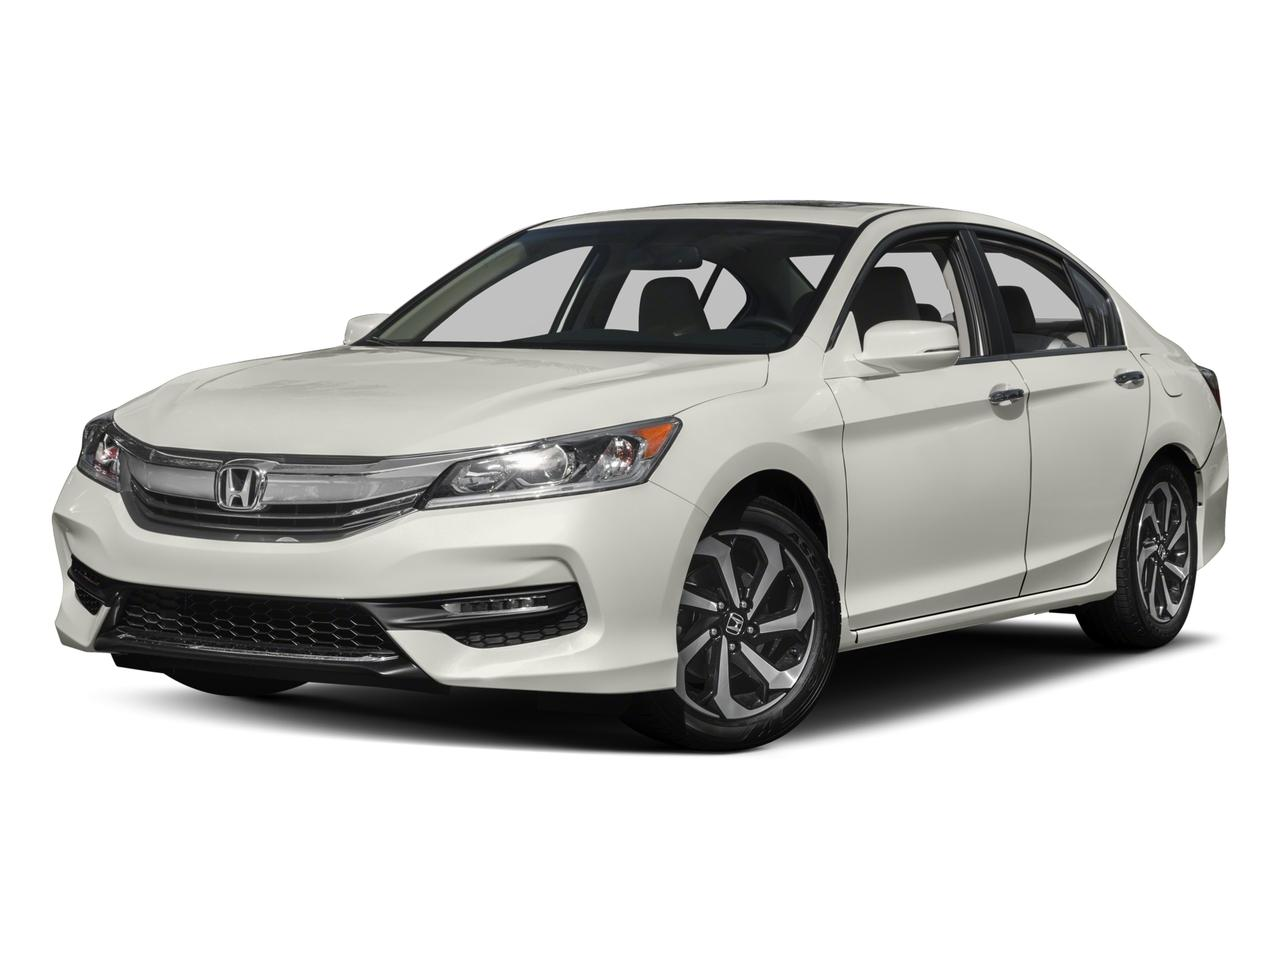 2017 Honda Accord Sedan Vehicle Photo in Norwich, NY 13815